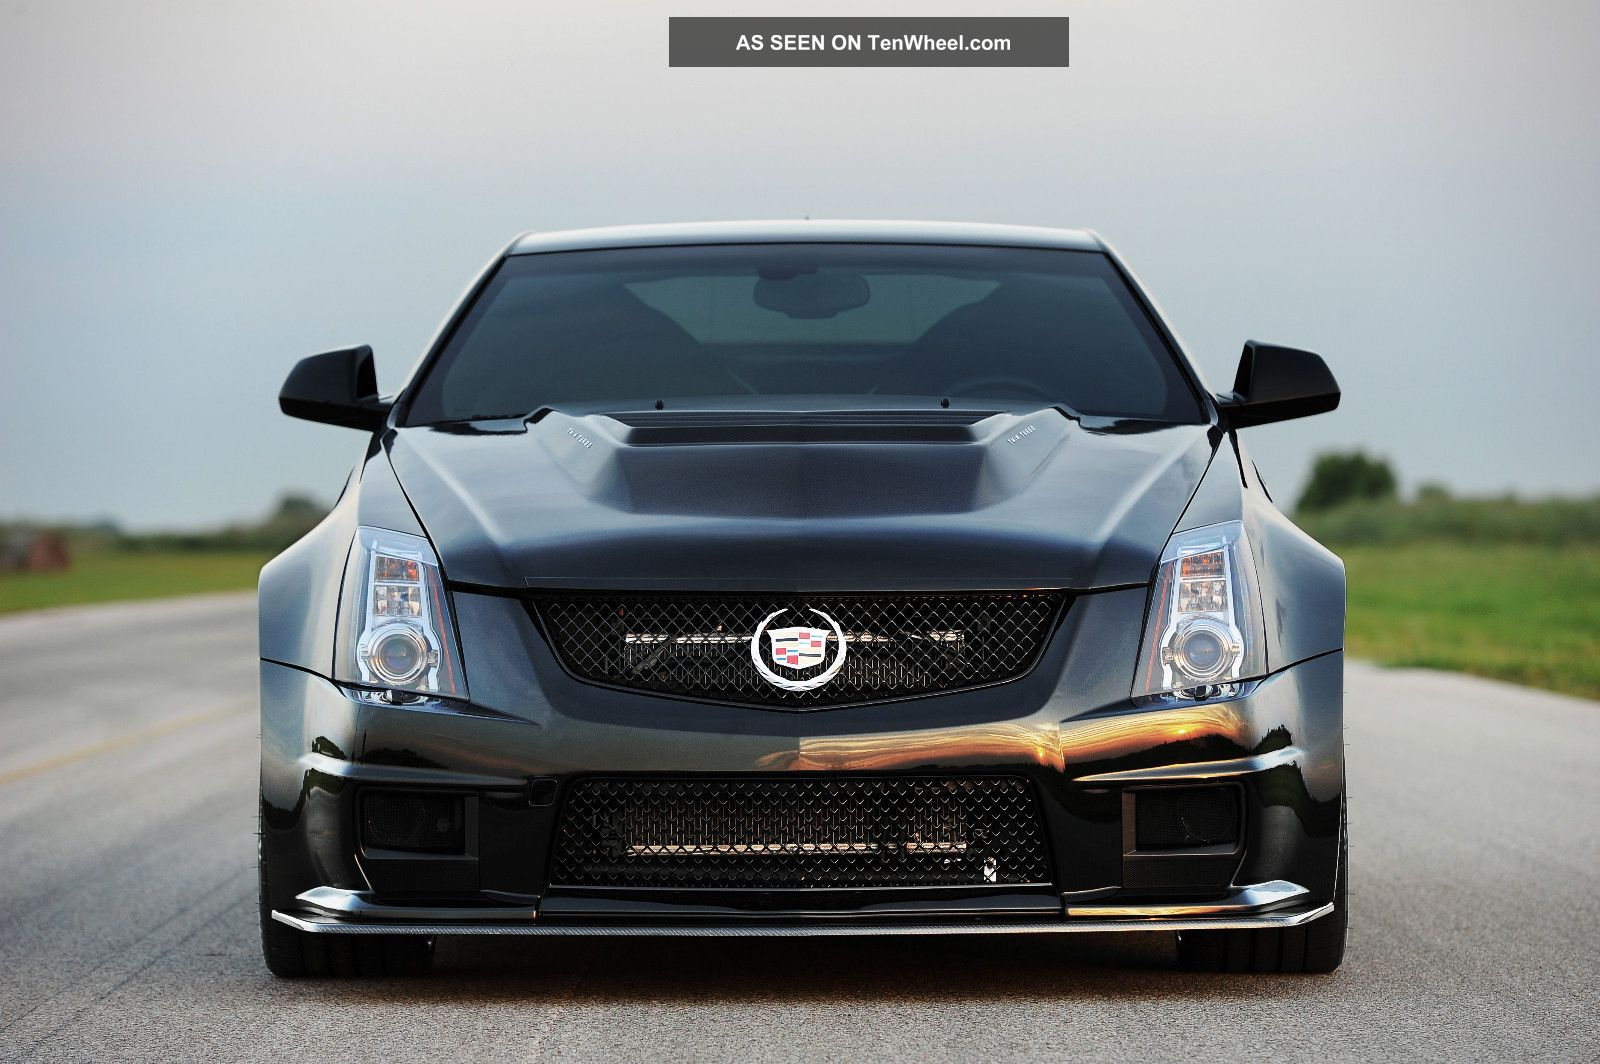 2013 cadillac cts v hennessey vr1200 twin turbo coupe 1200. Black Bedroom Furniture Sets. Home Design Ideas